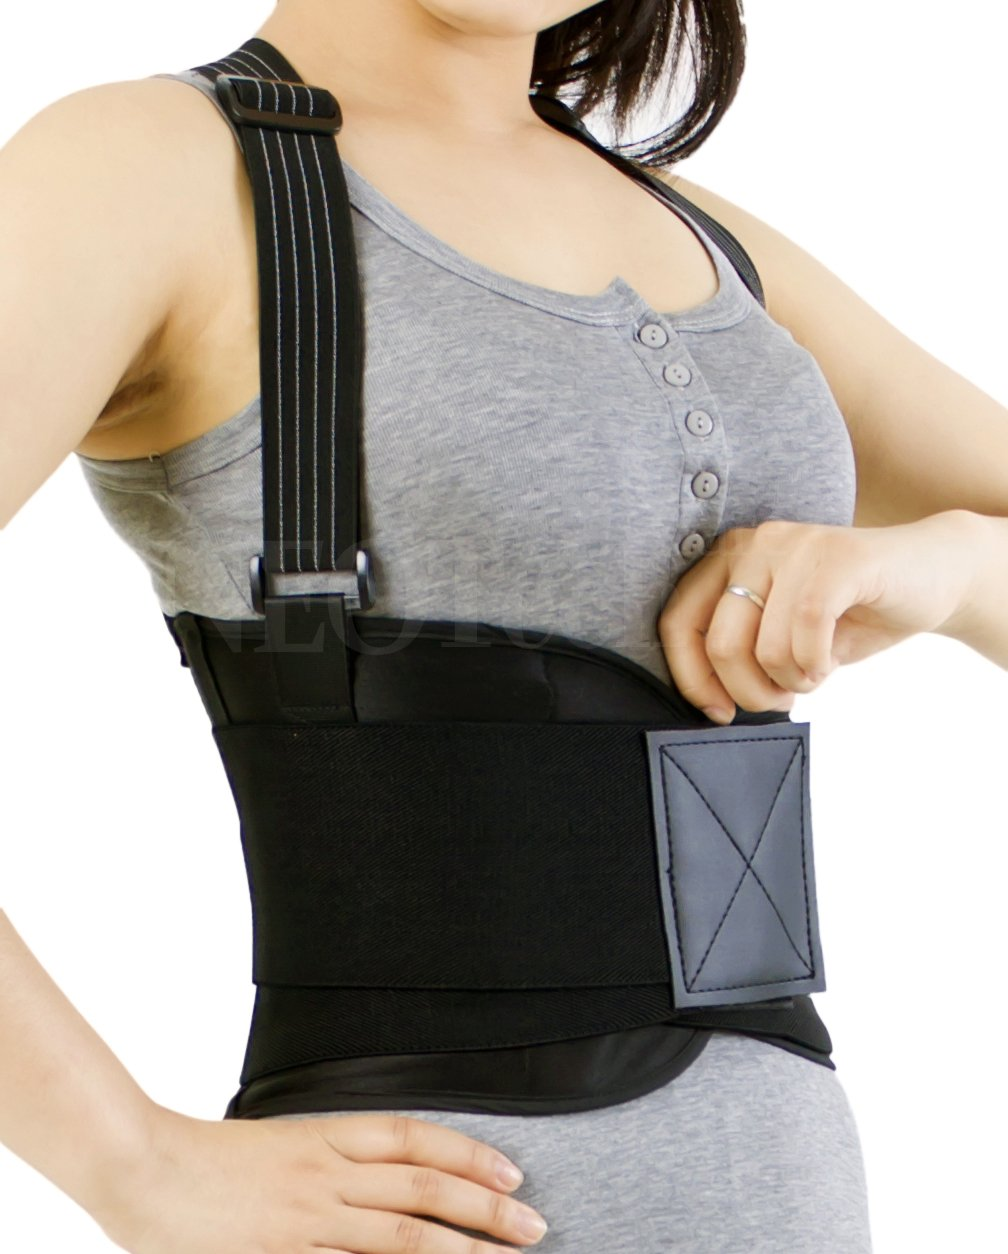 Back Brace with Suspenders for Women - Adjustable - Removable Shoulder Straps - Lumbar Support Belt - Lower Back Pain, Work, Lifting, Exercise, Gym - Neotech Care Brand - Black - Size M